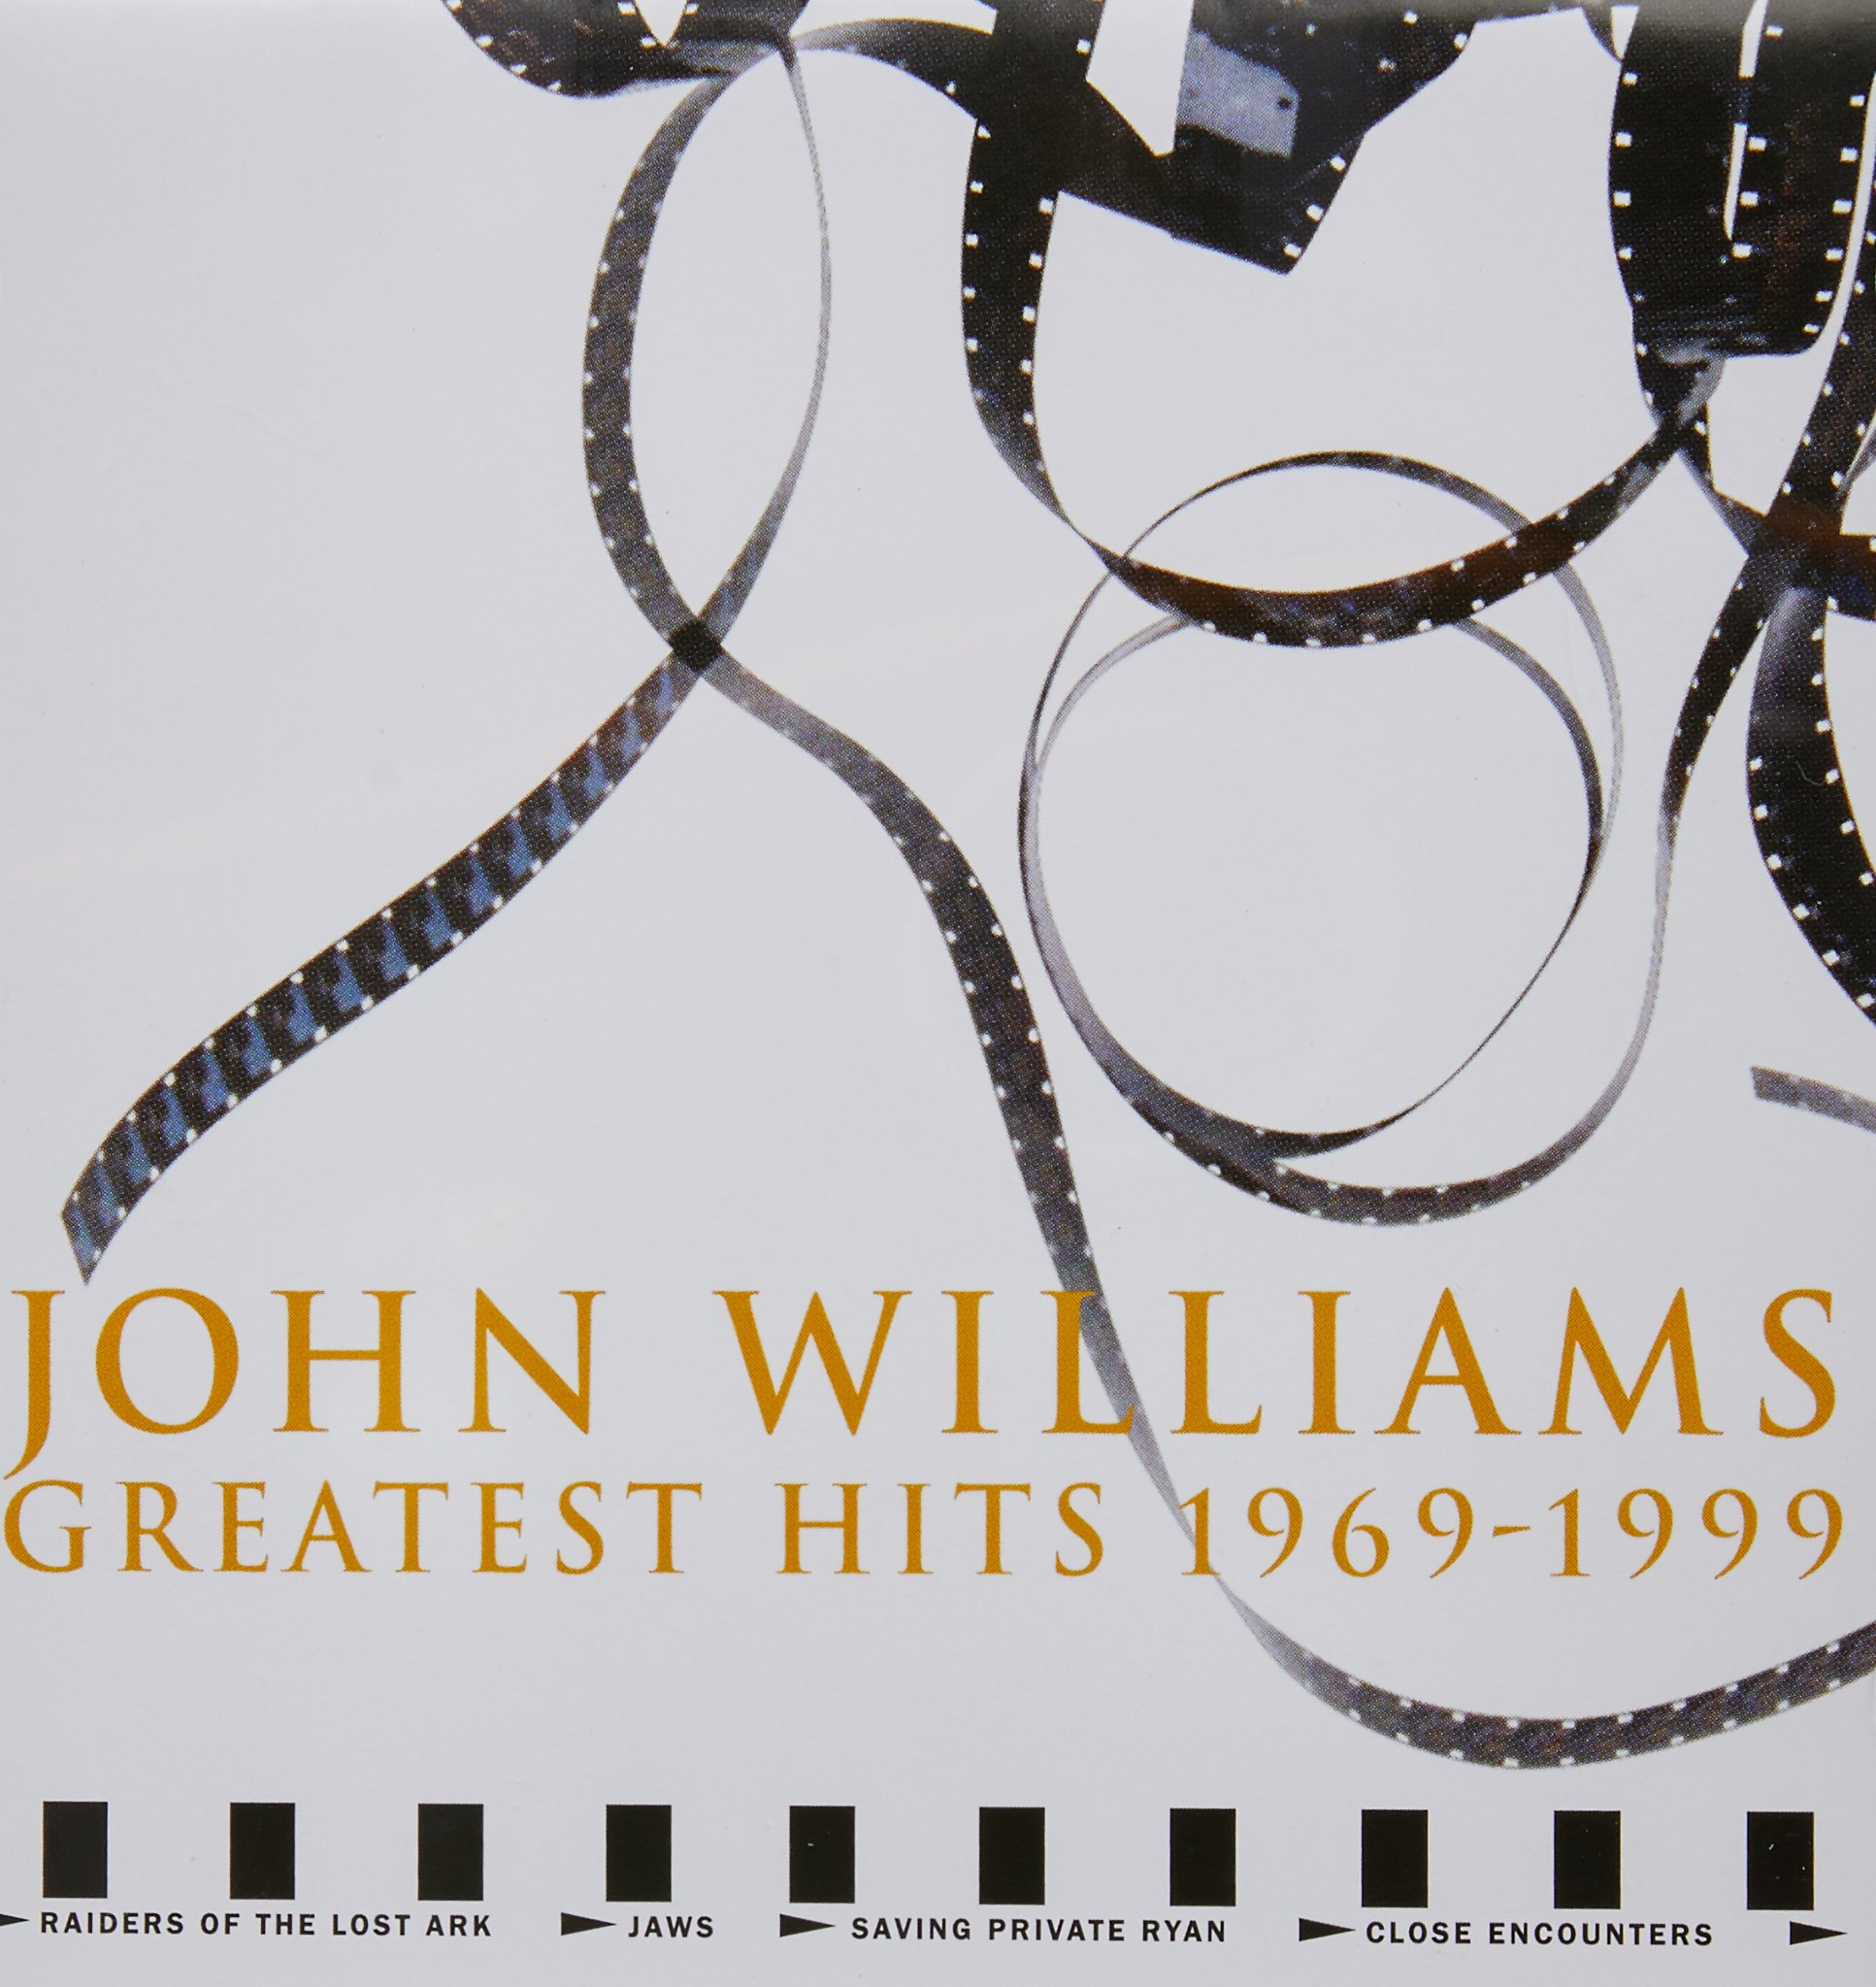 John Williams - Greatest Hits 1969 - 1999 by J.H. Williams Tool